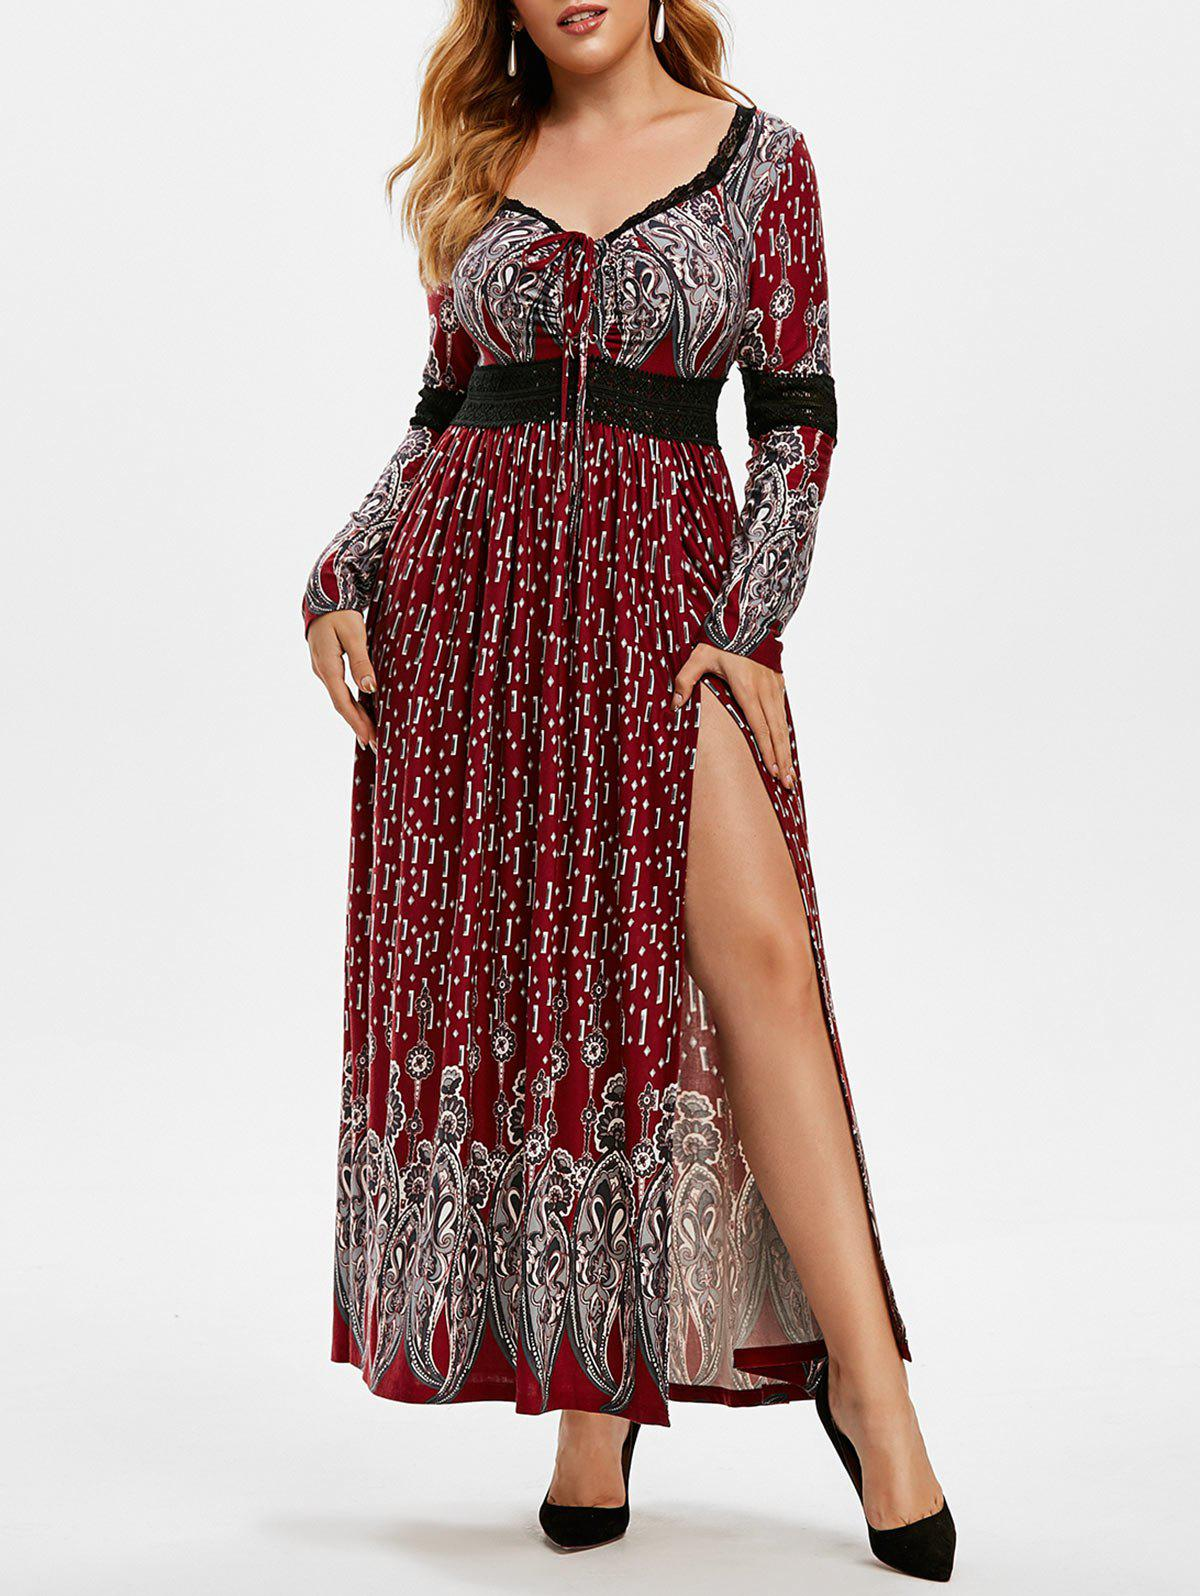 Plus Size Lace Panel Lace-up Empire Waist Dress - RED WINE 4X